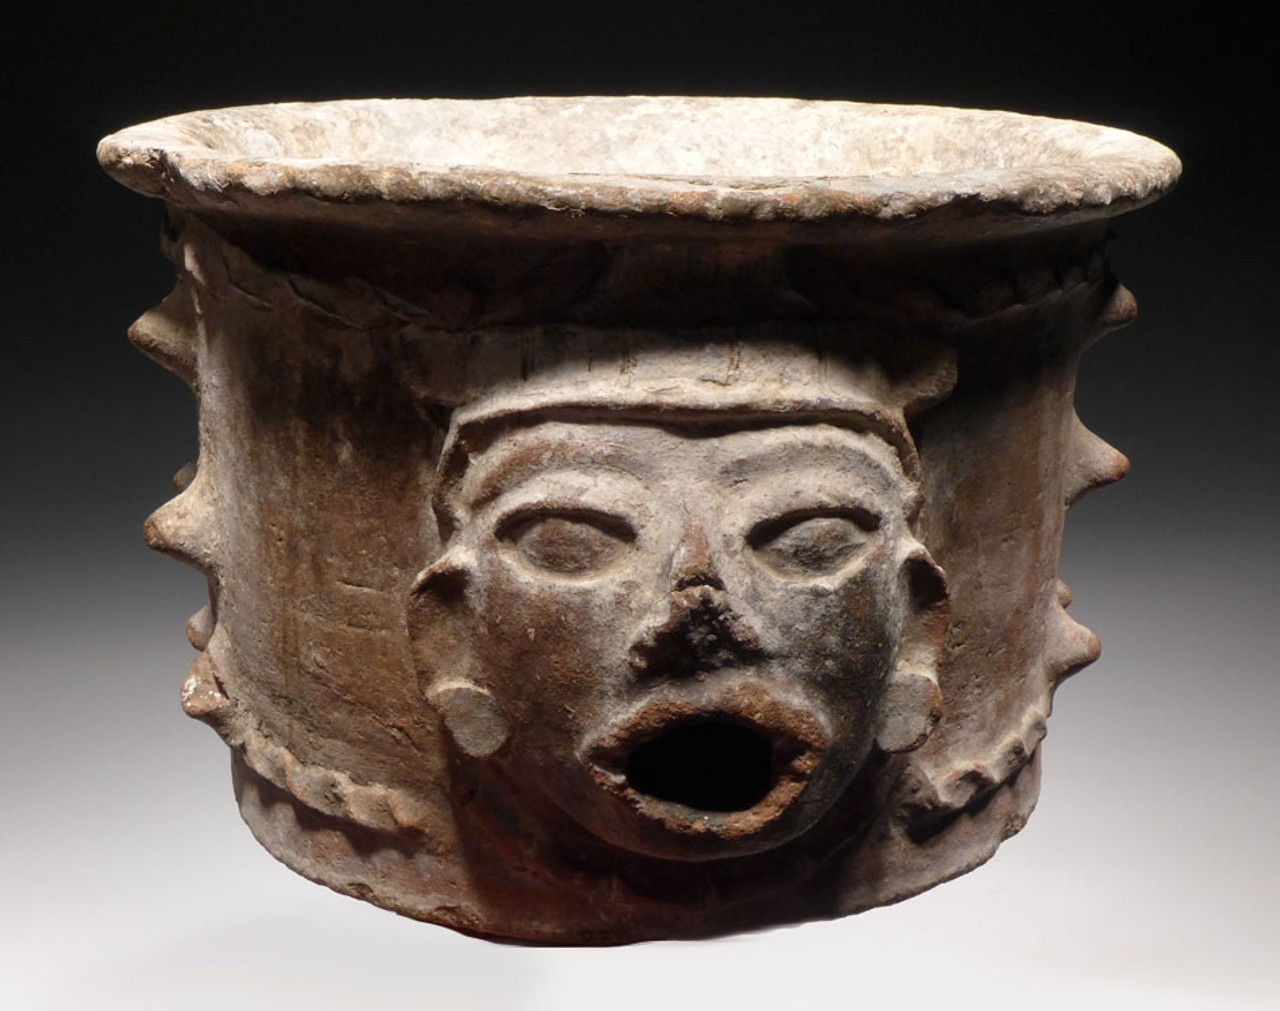 SPECTACULAR LARGE MAYAN SHRINE URN ALTER VESSEL FROM THE FAMOUS MINT MUSEUM *PC122